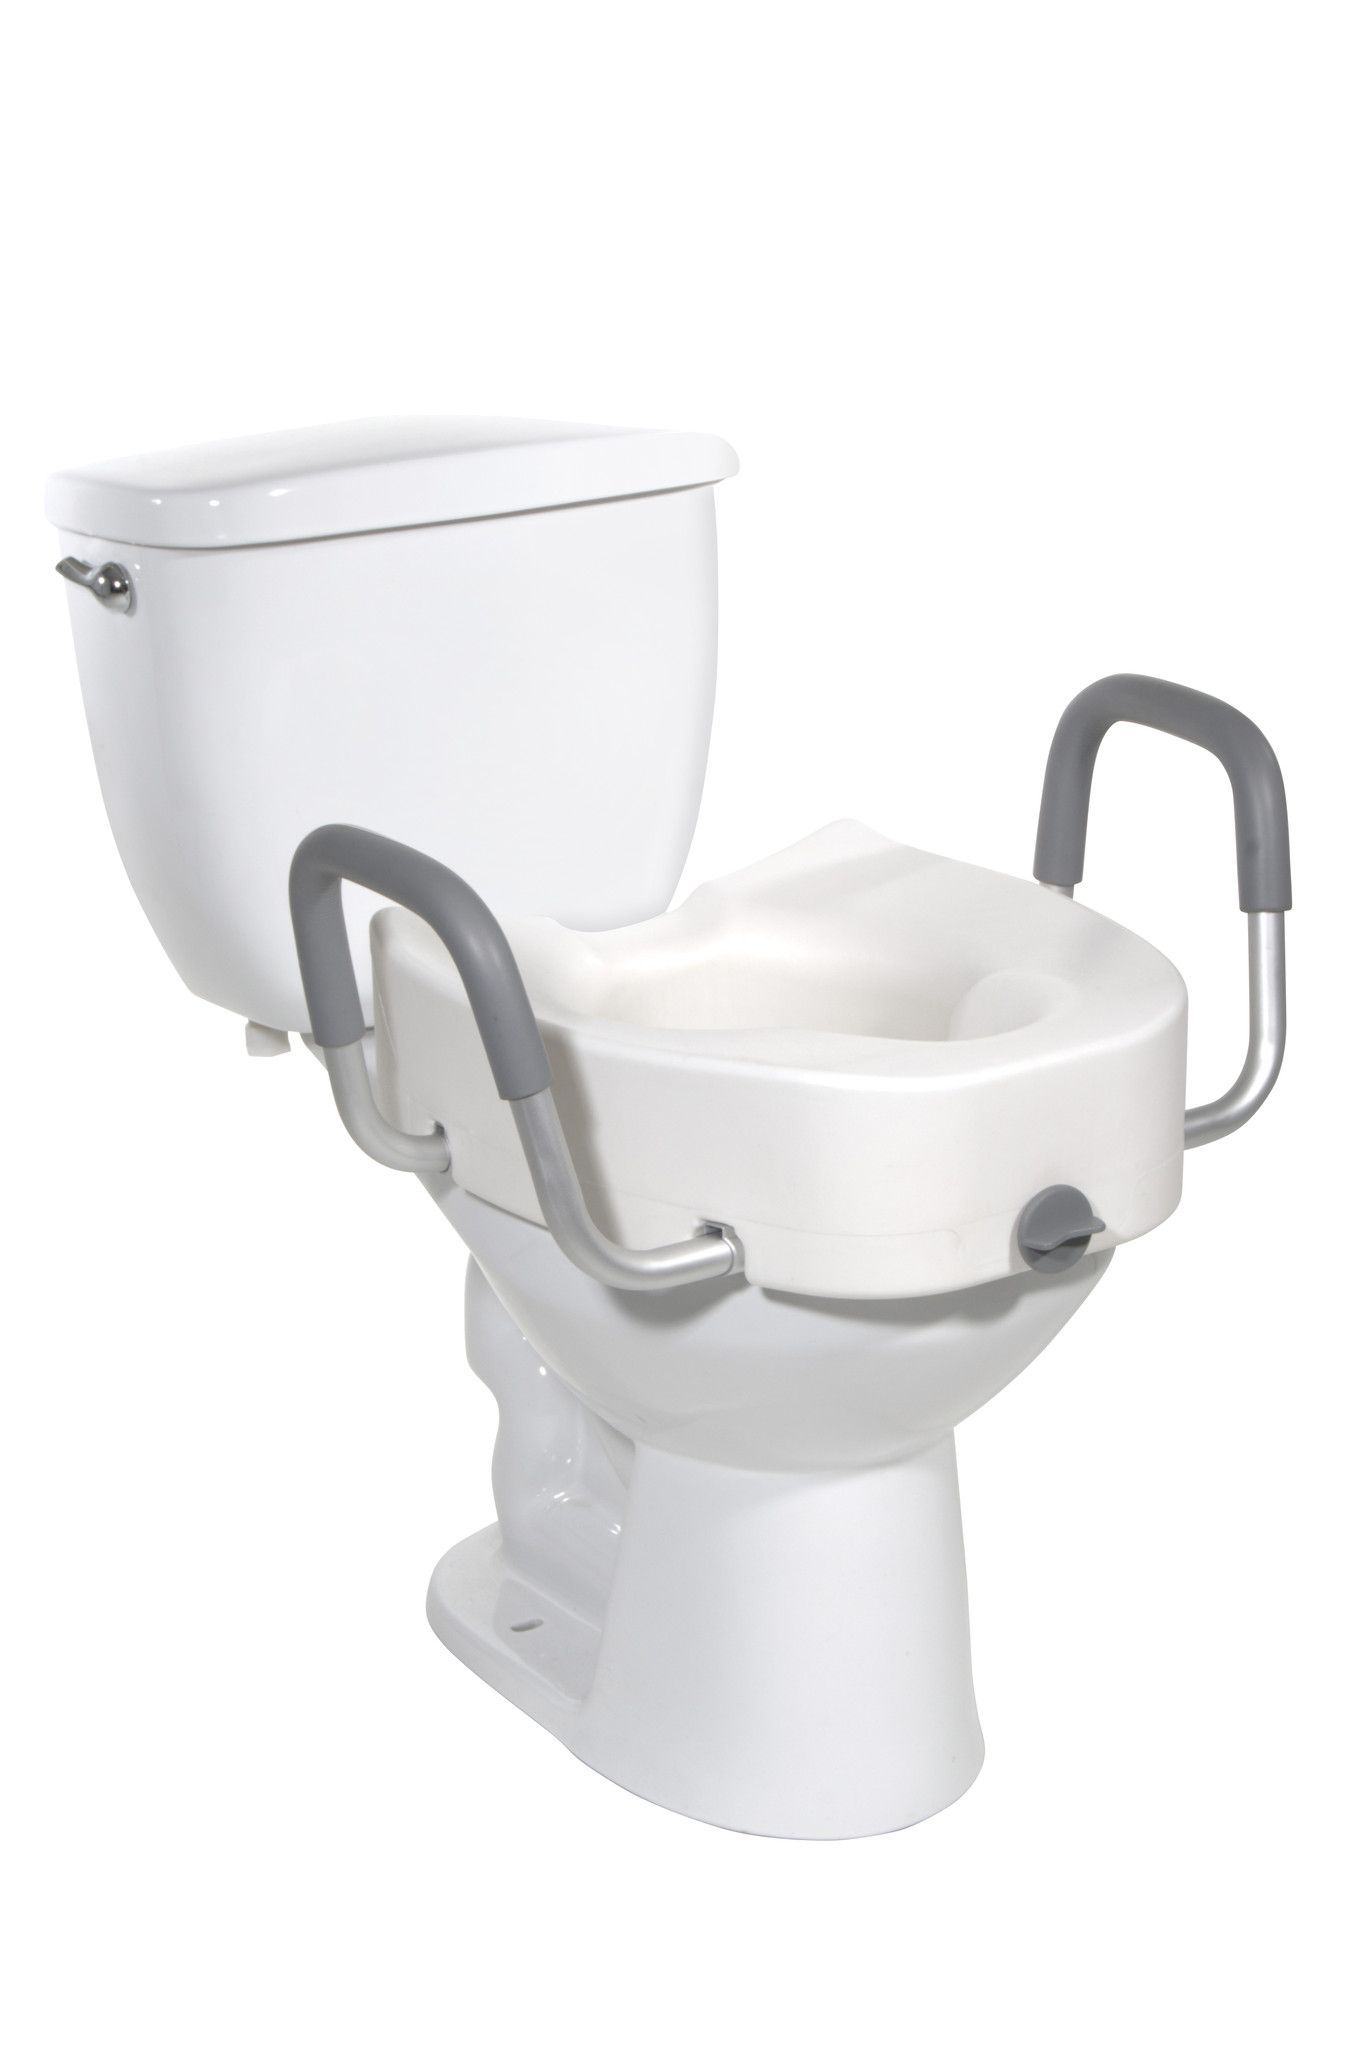 Magnificent Raised Toilet Seat With Padded Armrests In 2019 Products Dailytribune Chair Design For Home Dailytribuneorg